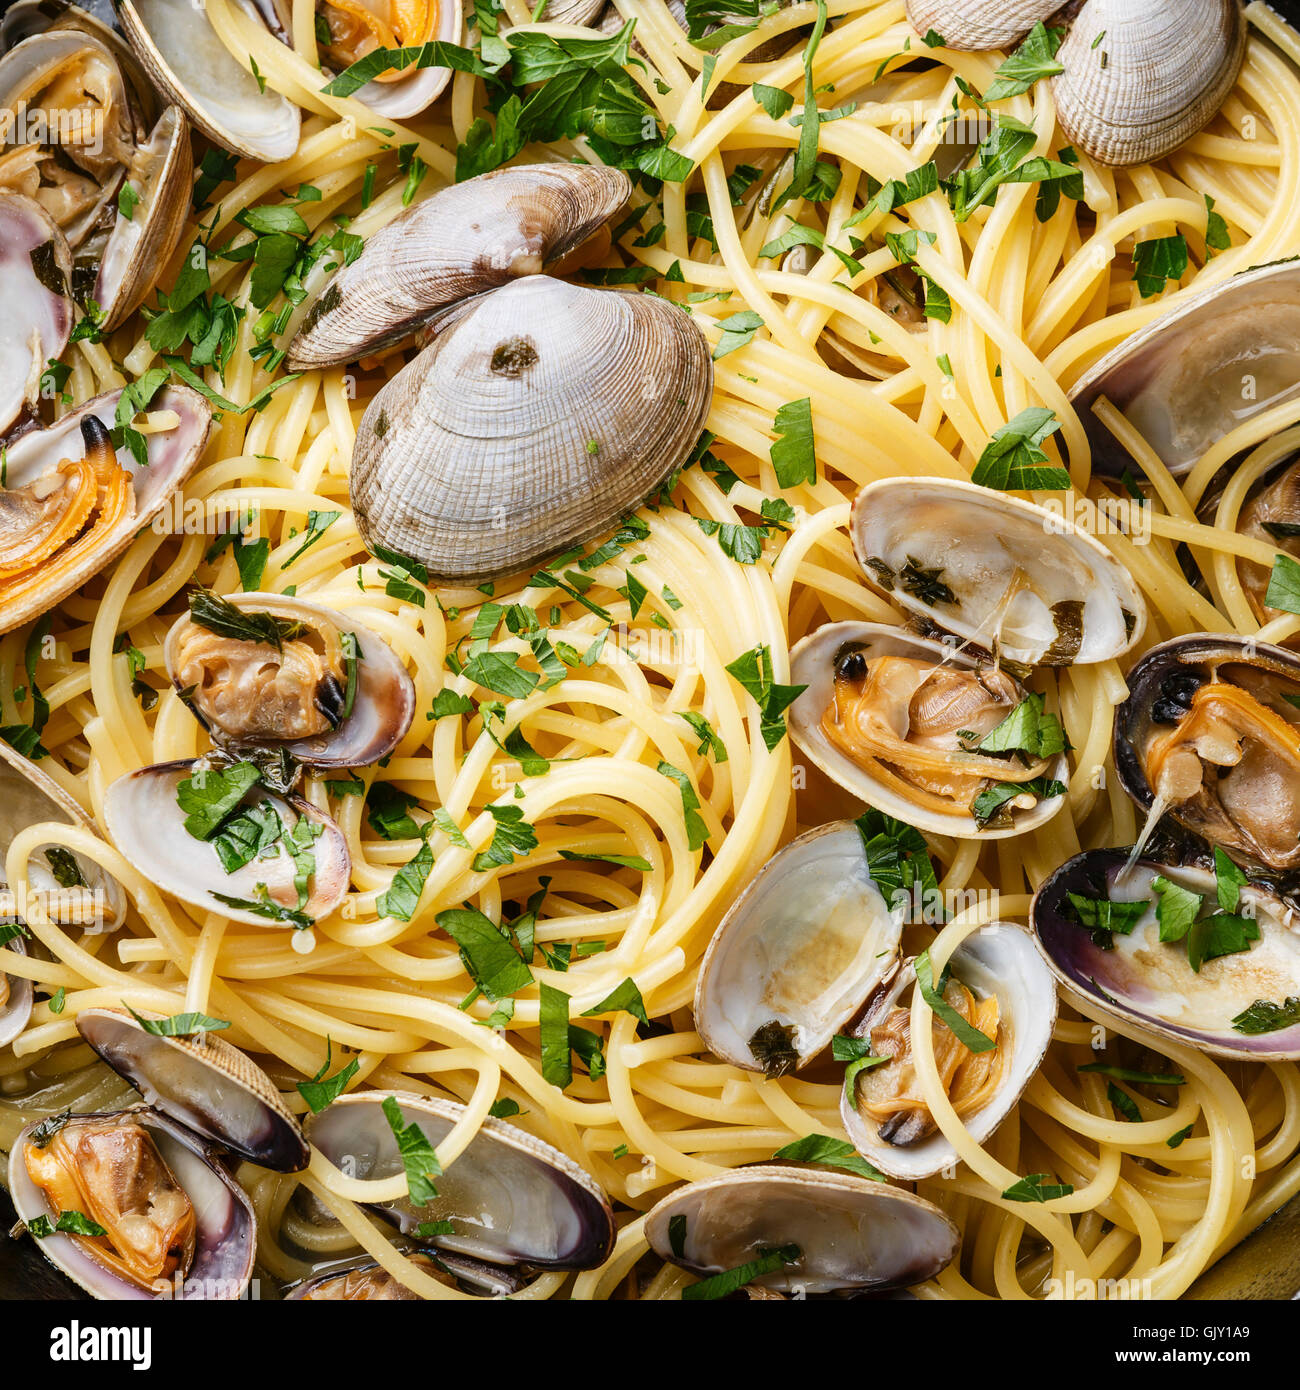 Spaghetti alle Vongole Seafood pasta with clams close up - Stock Image